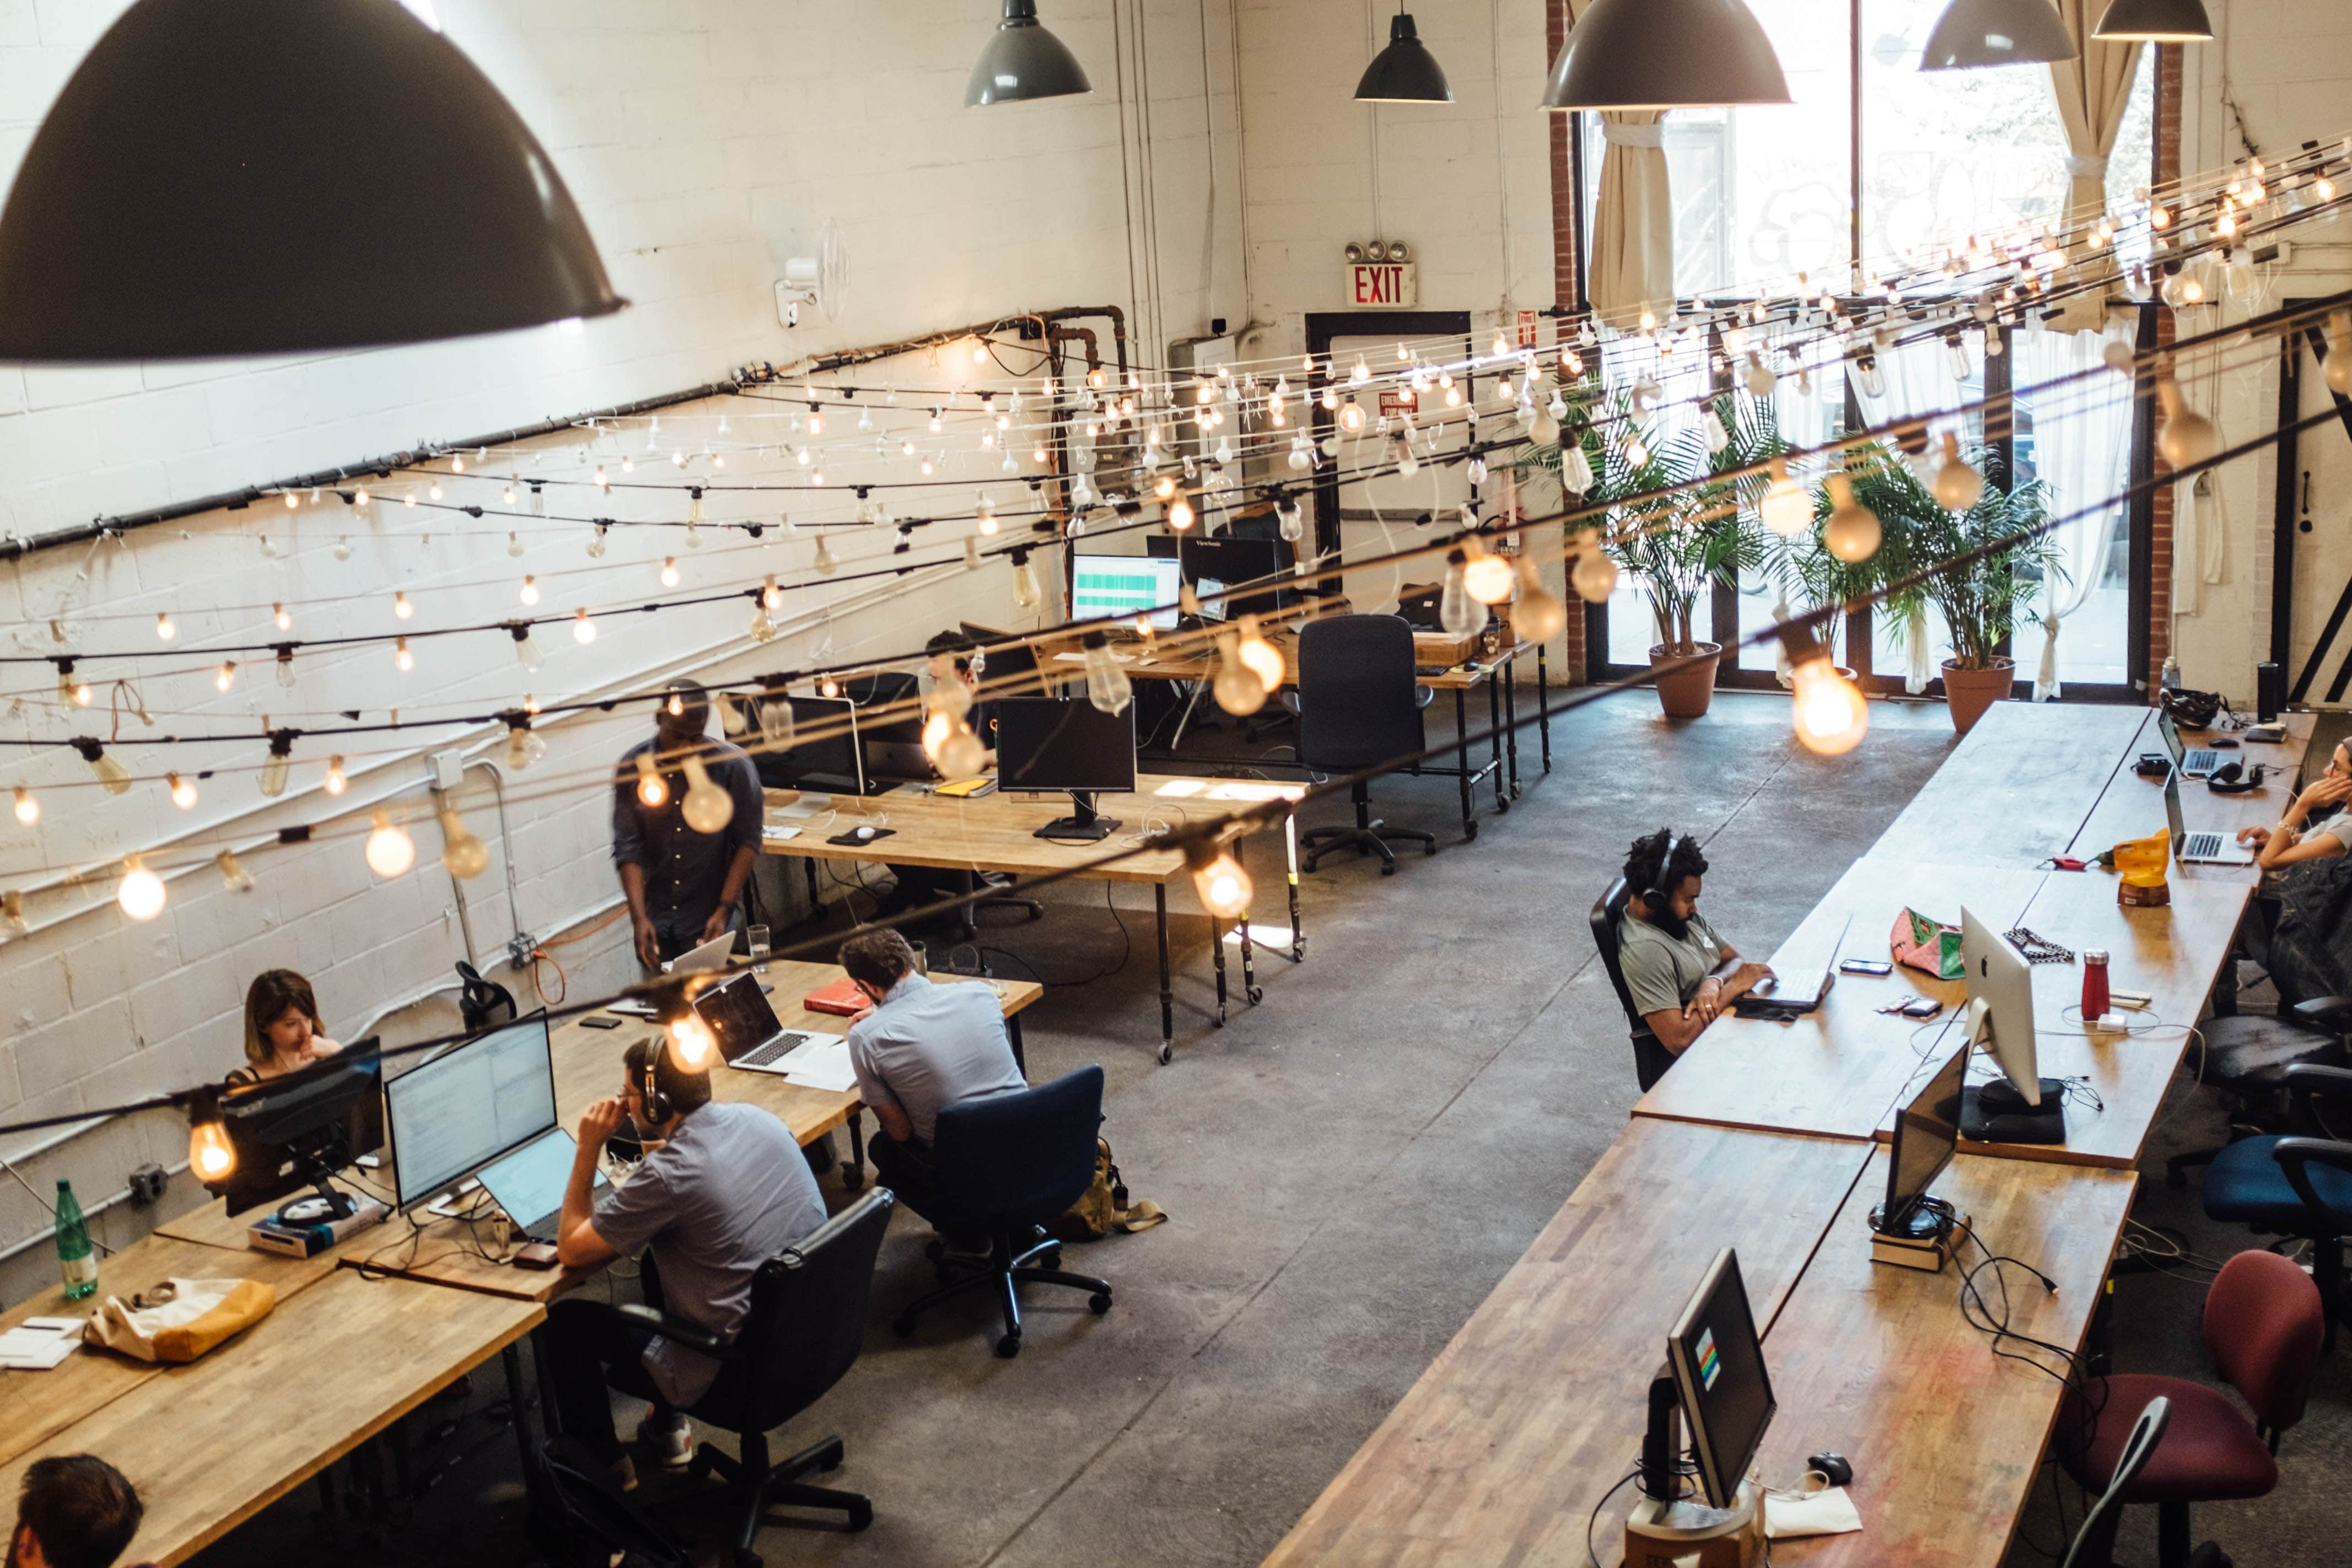 Working Remotely? Here are 4 Major Benefits of Coworking Spaces